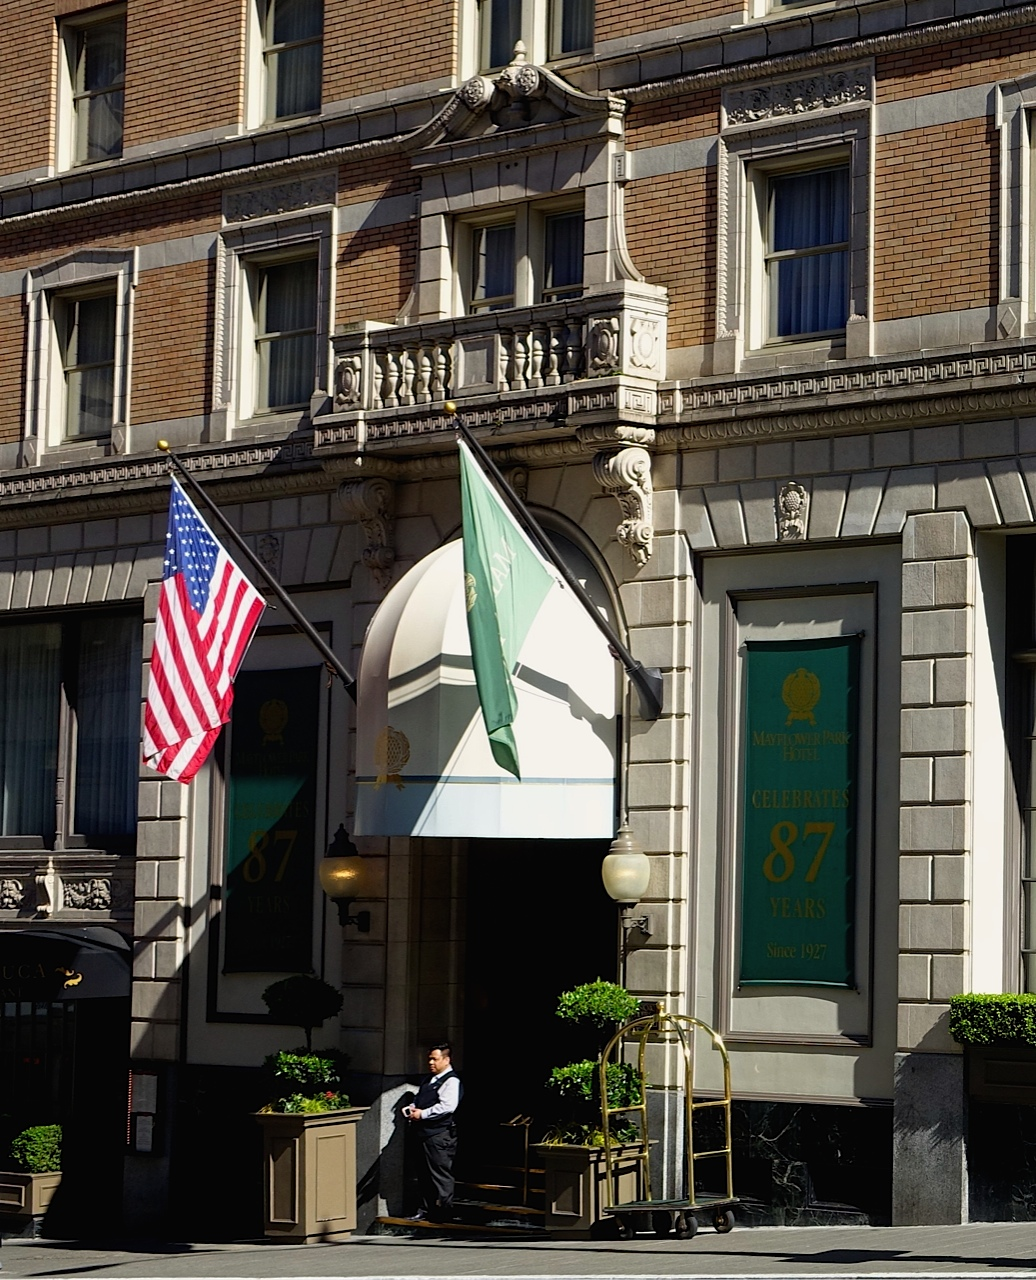 Mayflower Park Hotel is full of historic charm and character.  It is perfectly located for shoppers just a block away from Nordstrom and Macy's.